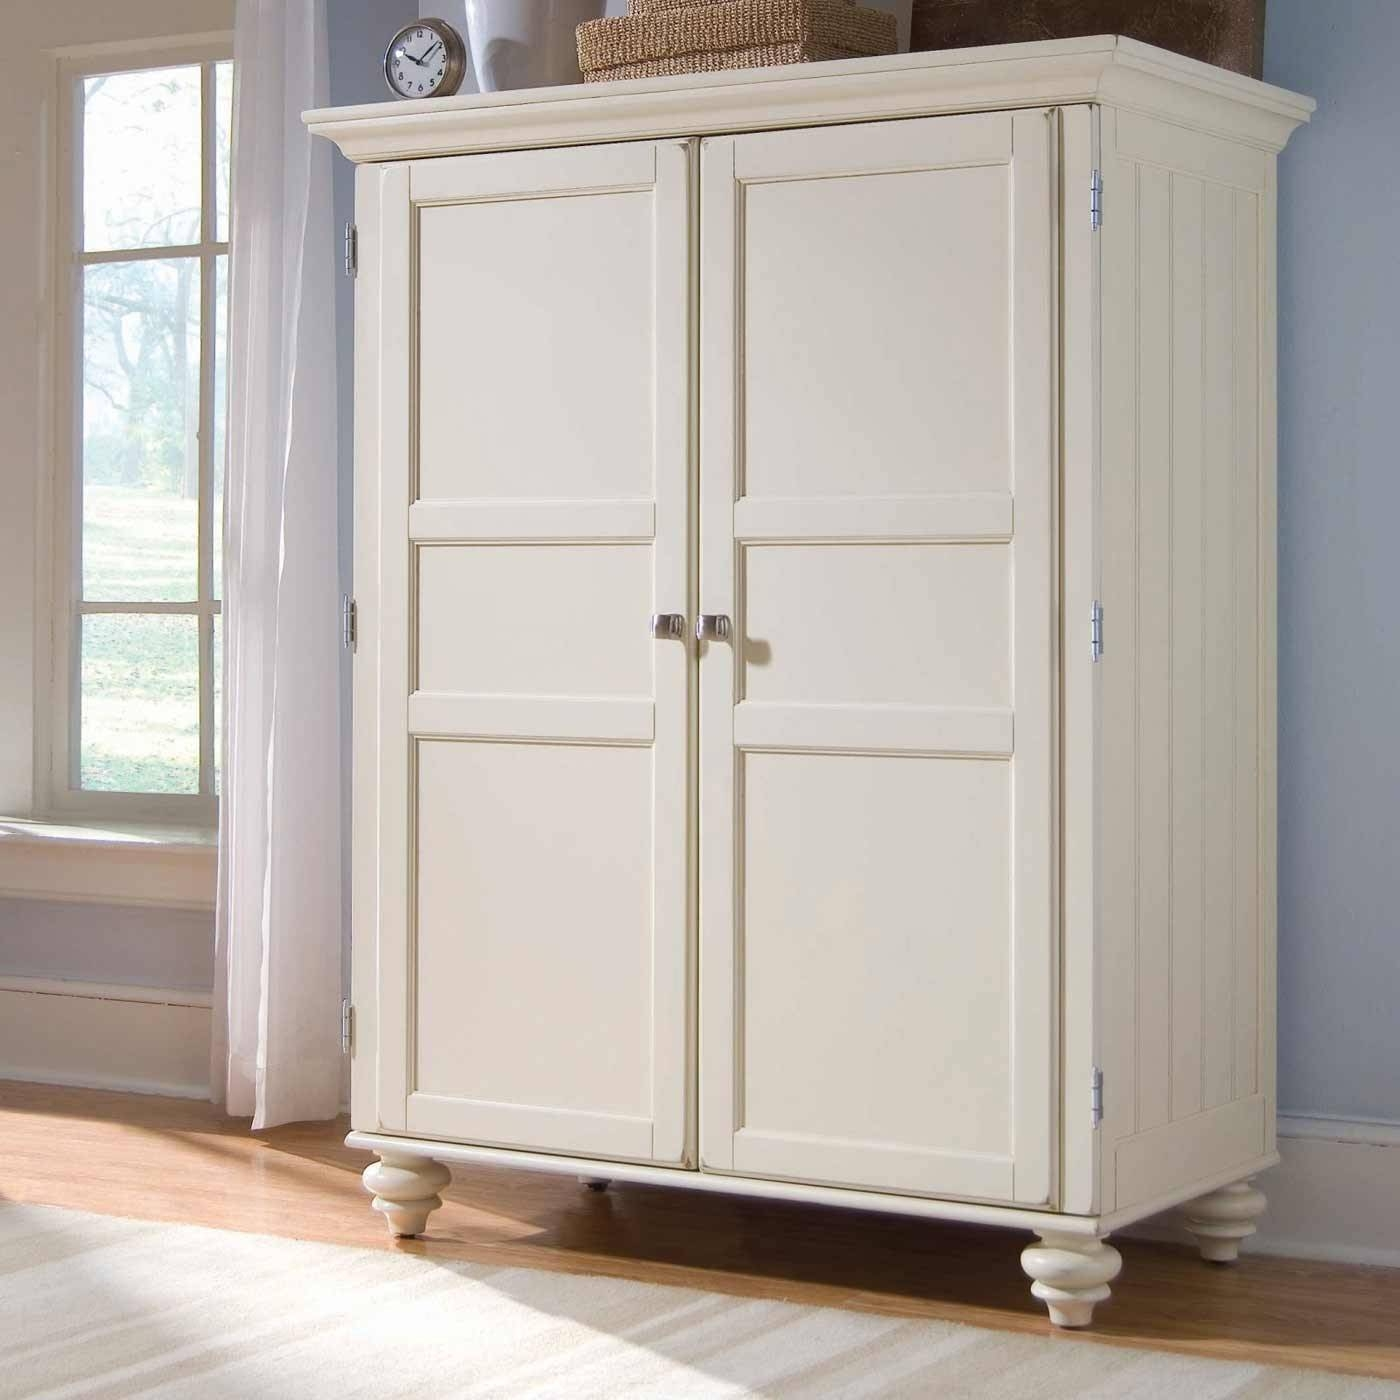 Bedroom : Antique Wardrobe Closet Ikea Closet Organizers Systems with Antique White Wardrobes (Image 2 of 15)